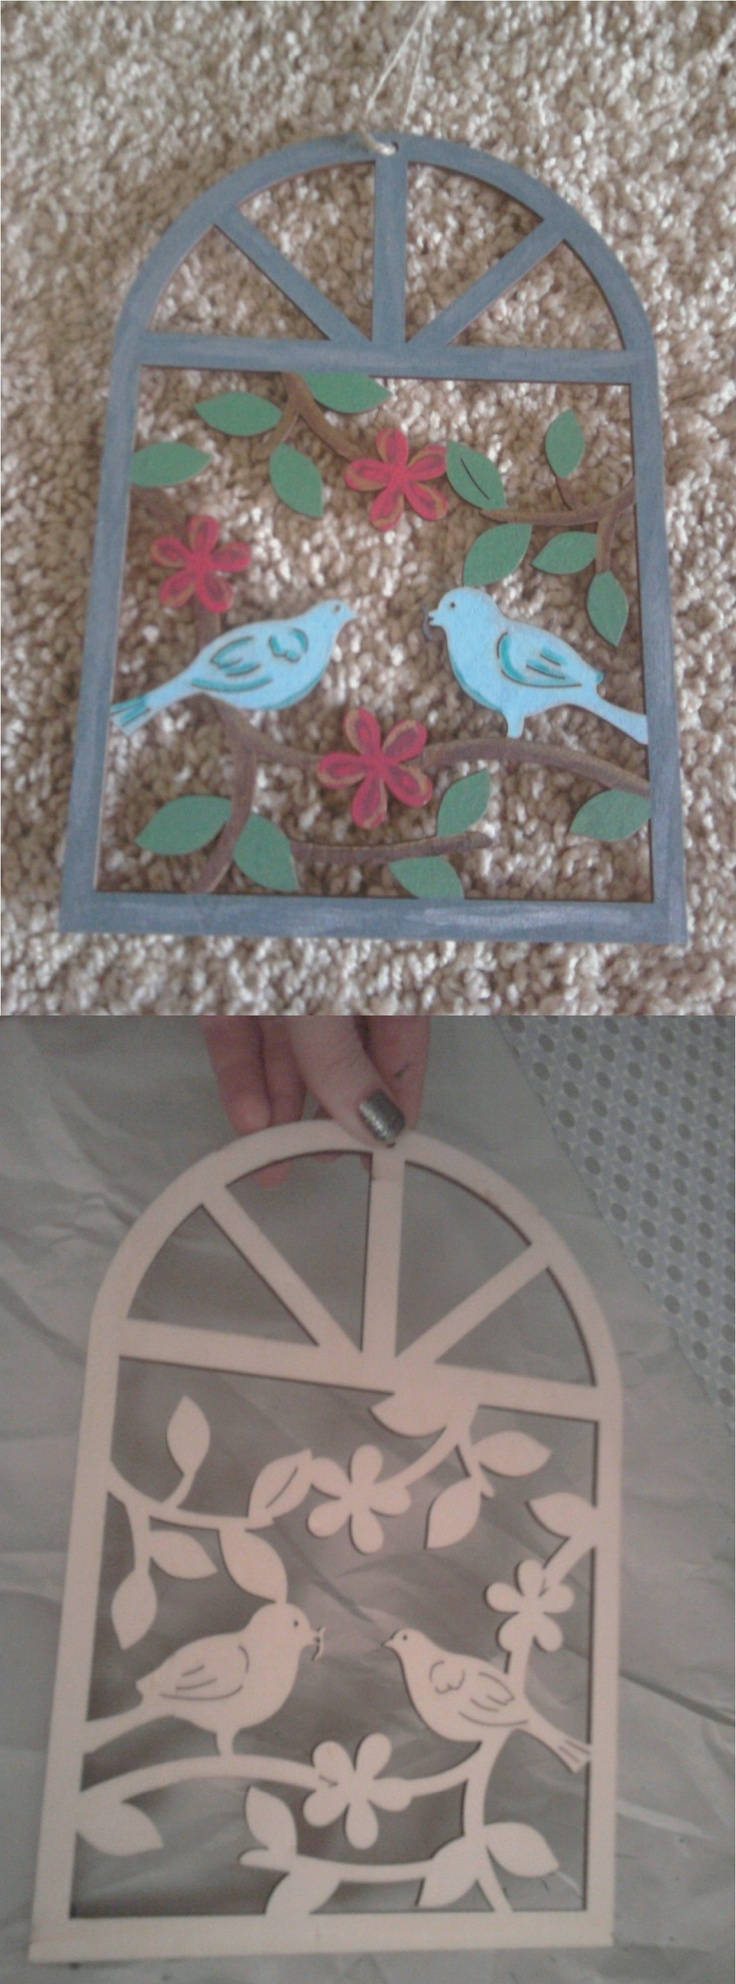 So Michaels has all these punched out pieces of wood that you can paint however you like... I felt like I was doing a grown up coloring page. Very easy!!